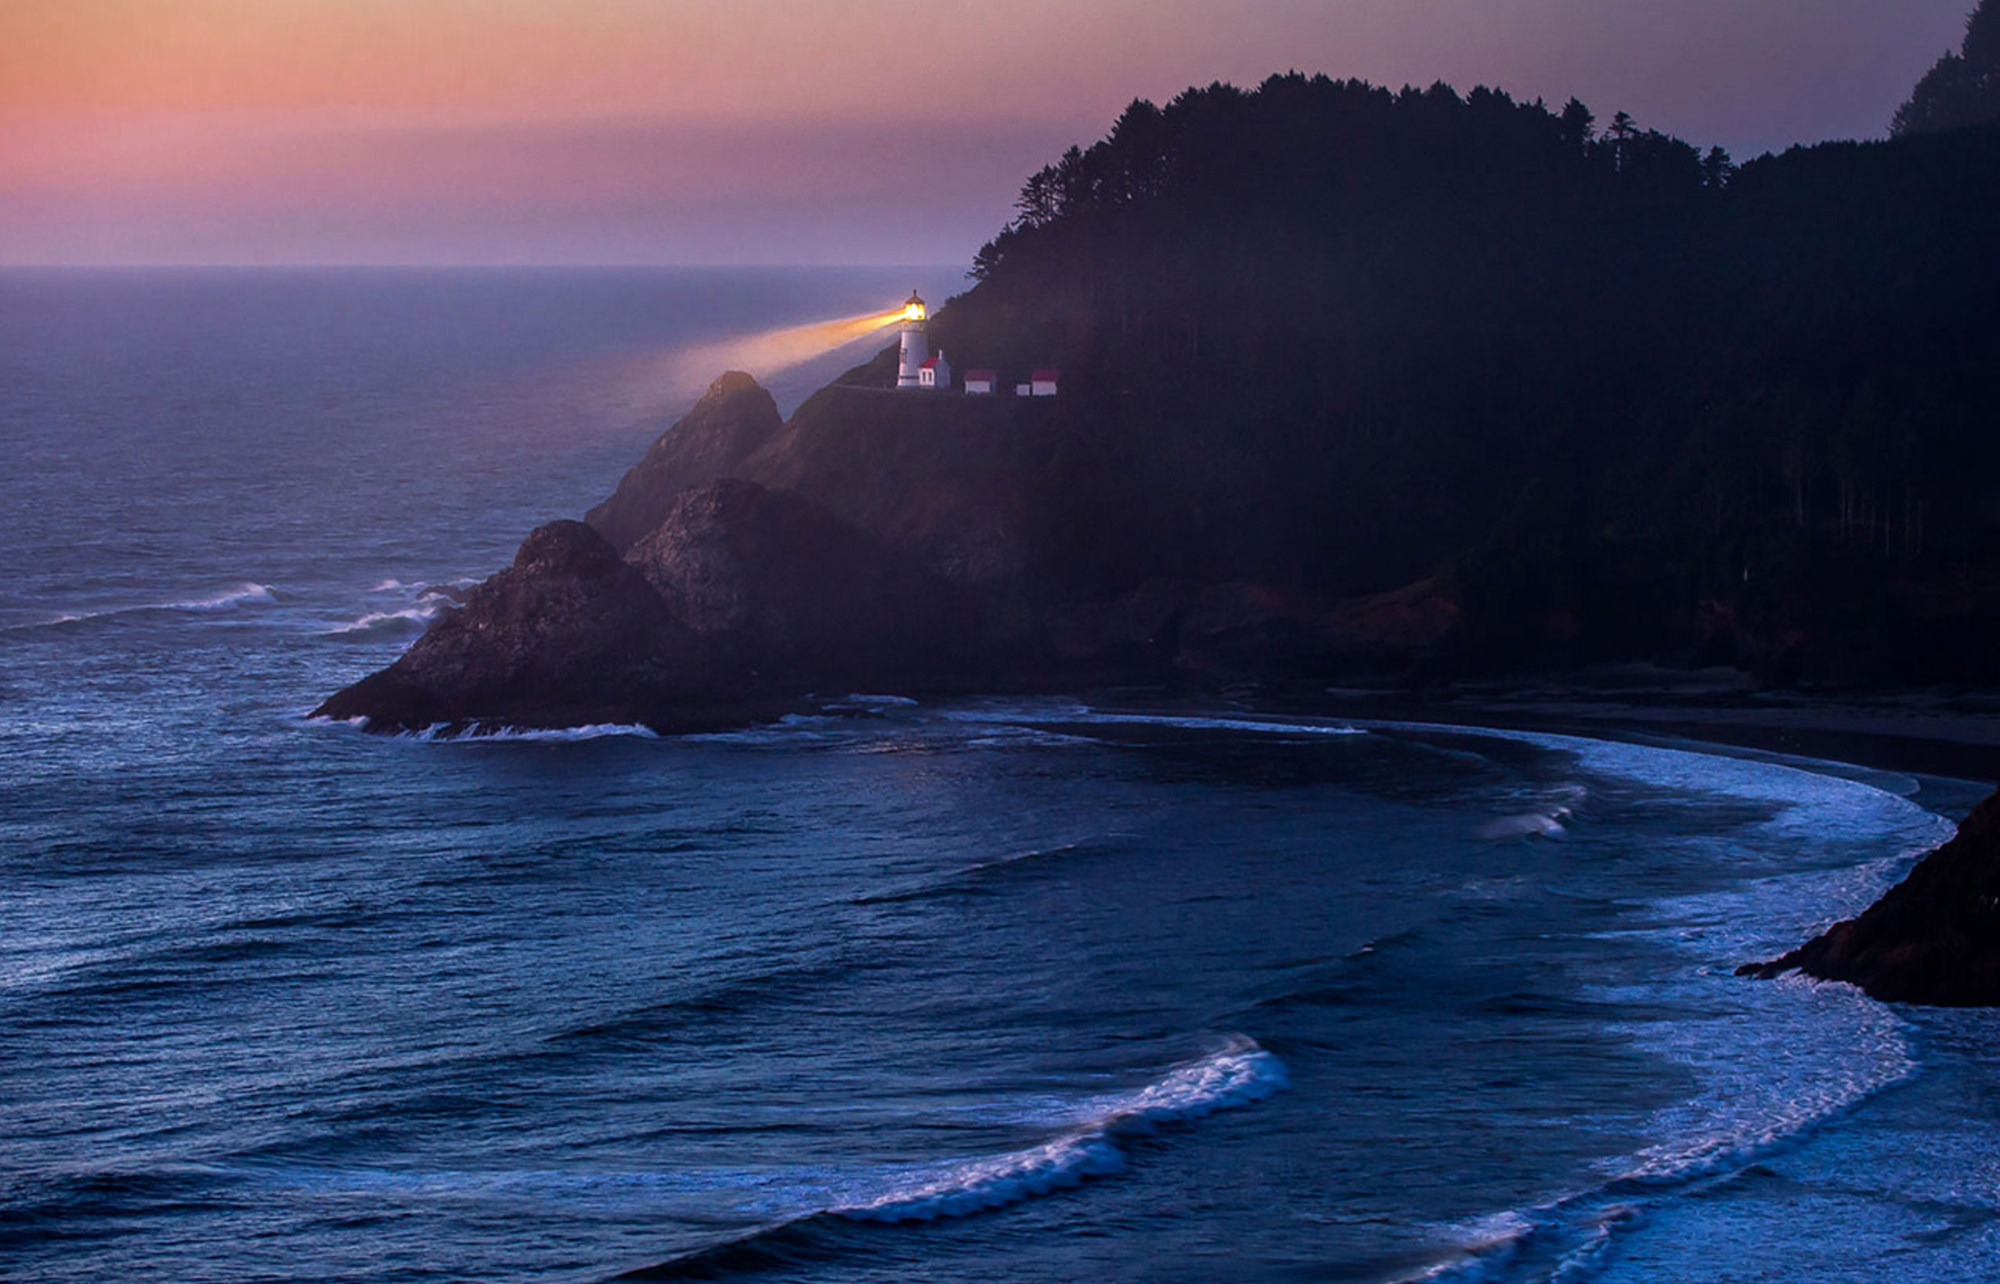 Heceta Head Lighthouse - Central Oregon CoastImage by Alex Morley @ www.alexmorleyphoto.com